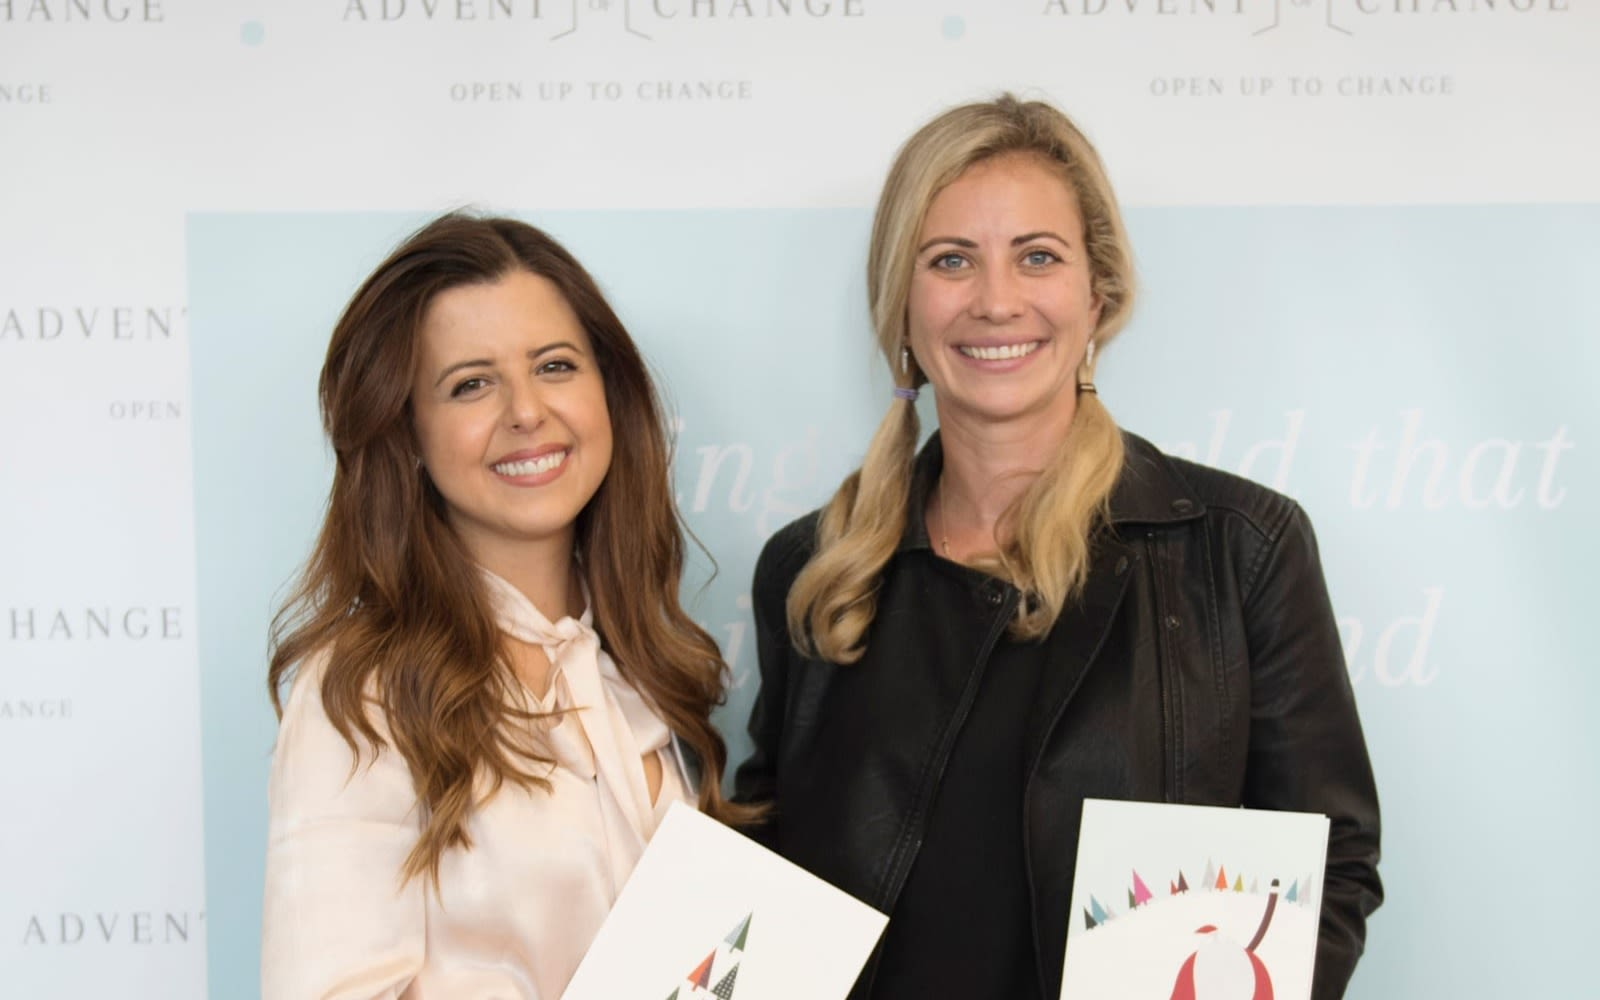 Holly Branson with Advent of Change founder Kristina